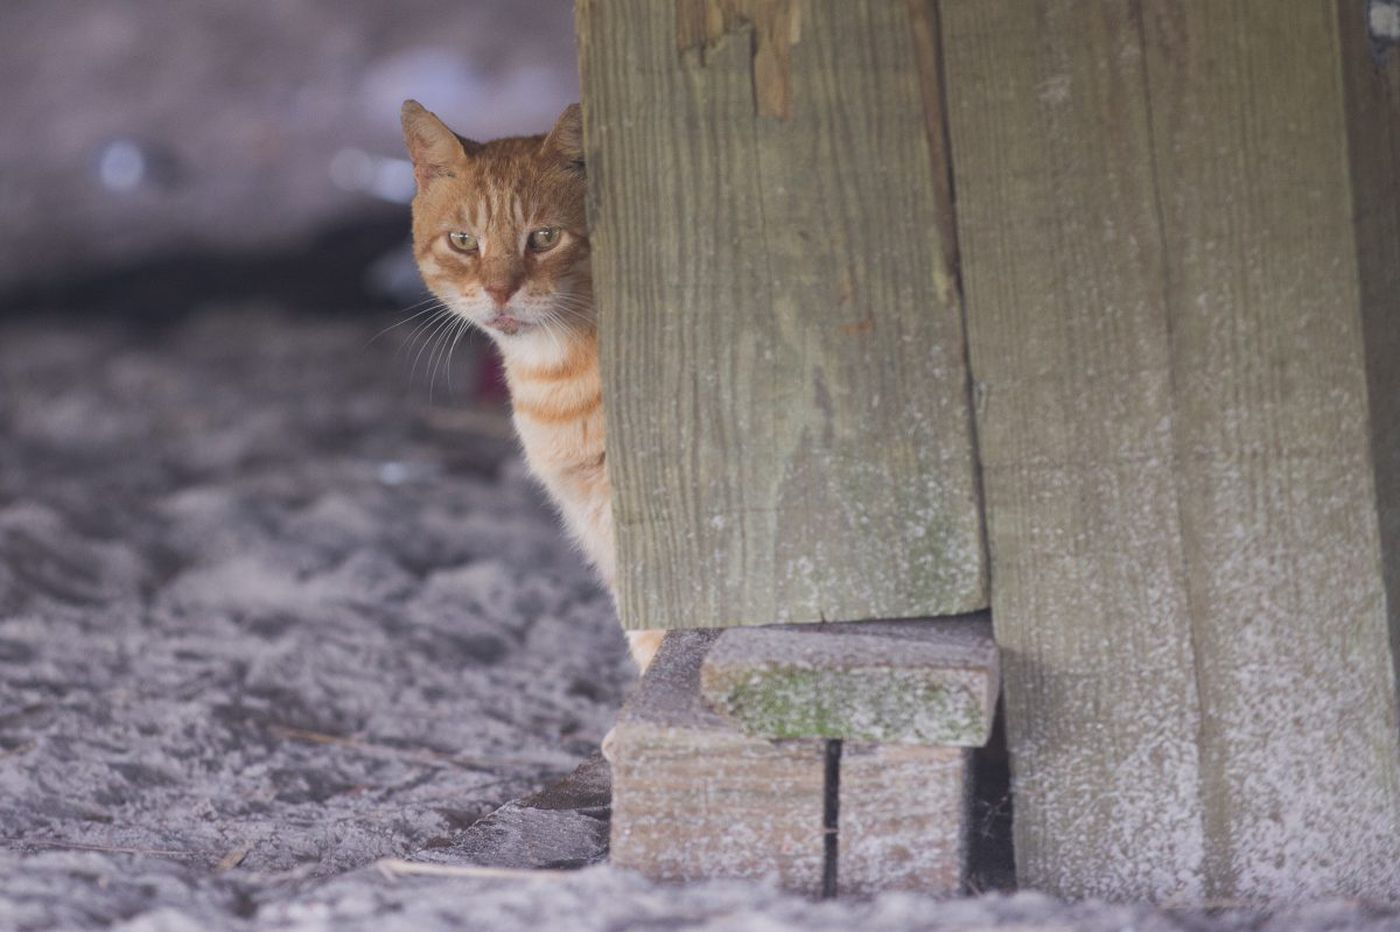 Atlantic City and feral cats - purrfect together